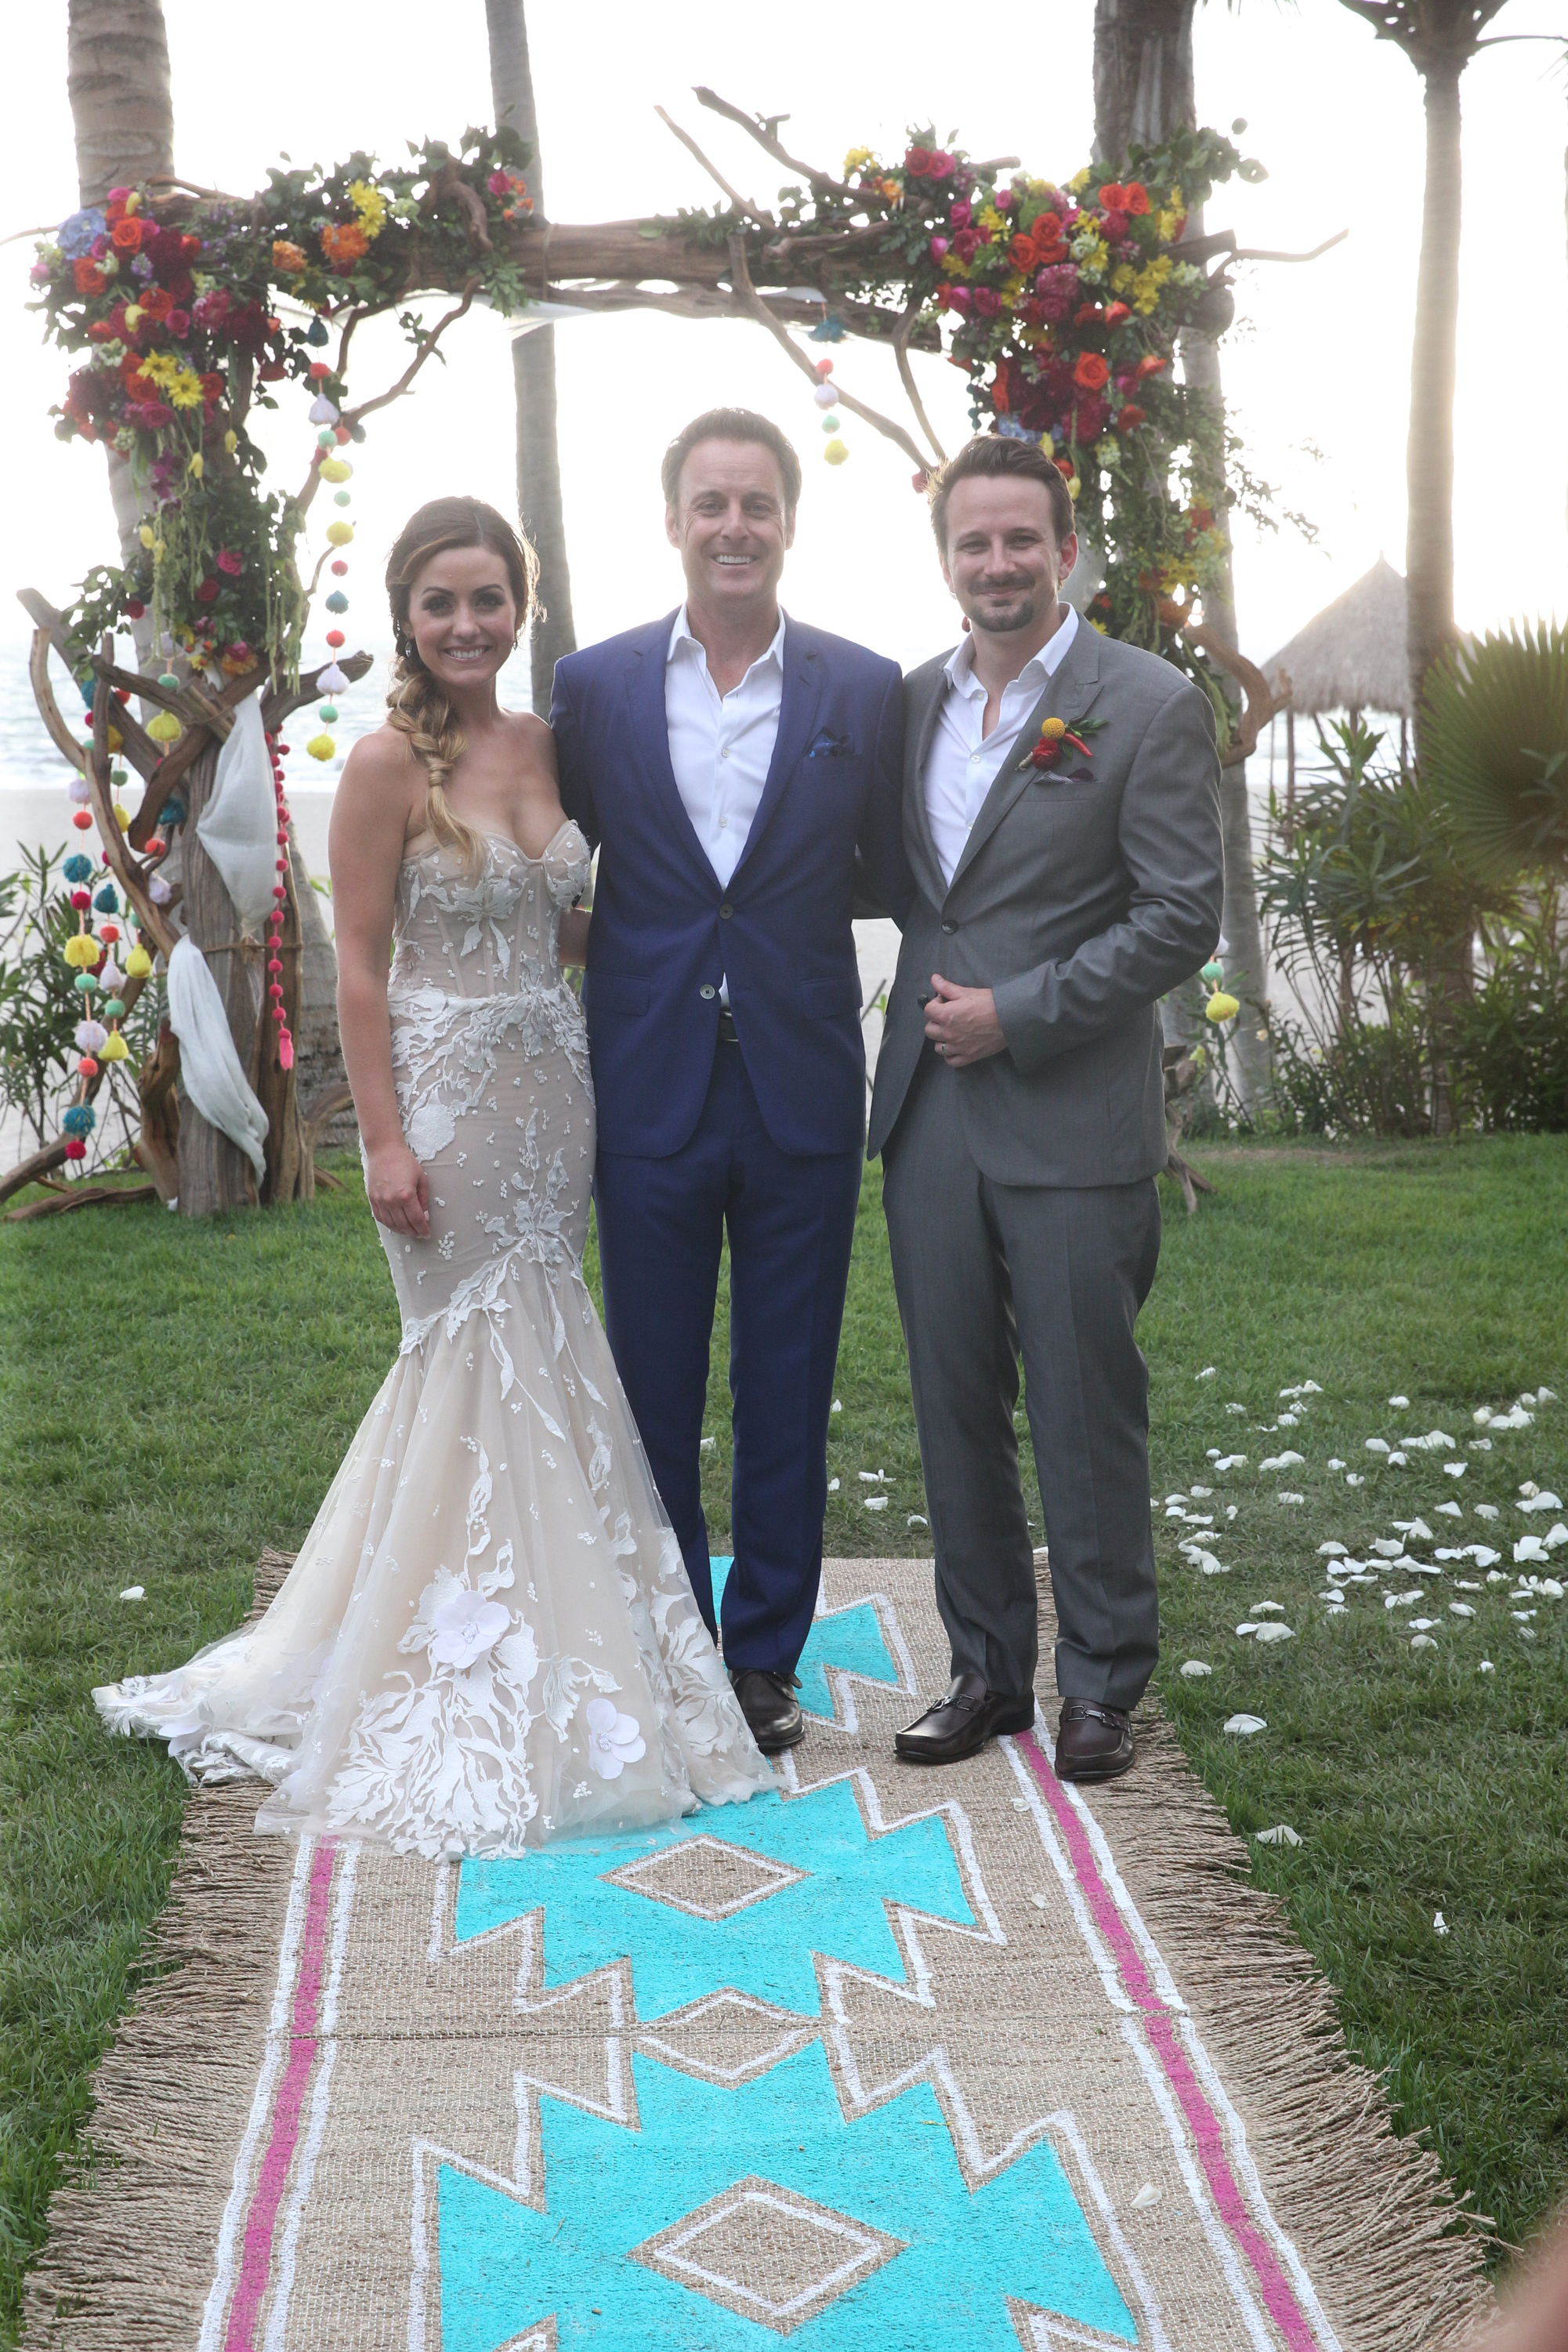 """BACHELOR IN PARADISE - """"Episode 401b"""" - In the next episode that airs TUESDAY, AUGUST 15 (8:00-10:01 p.m. EDT), Carly and Evan exchange marriage vows in Paradise before an assemblage of their family and friends, including many of our Bachelor favorites. (ABC/Paul Hebert) CARLY WADDELL, CHRIS HARRISON, EVAN BASS"""